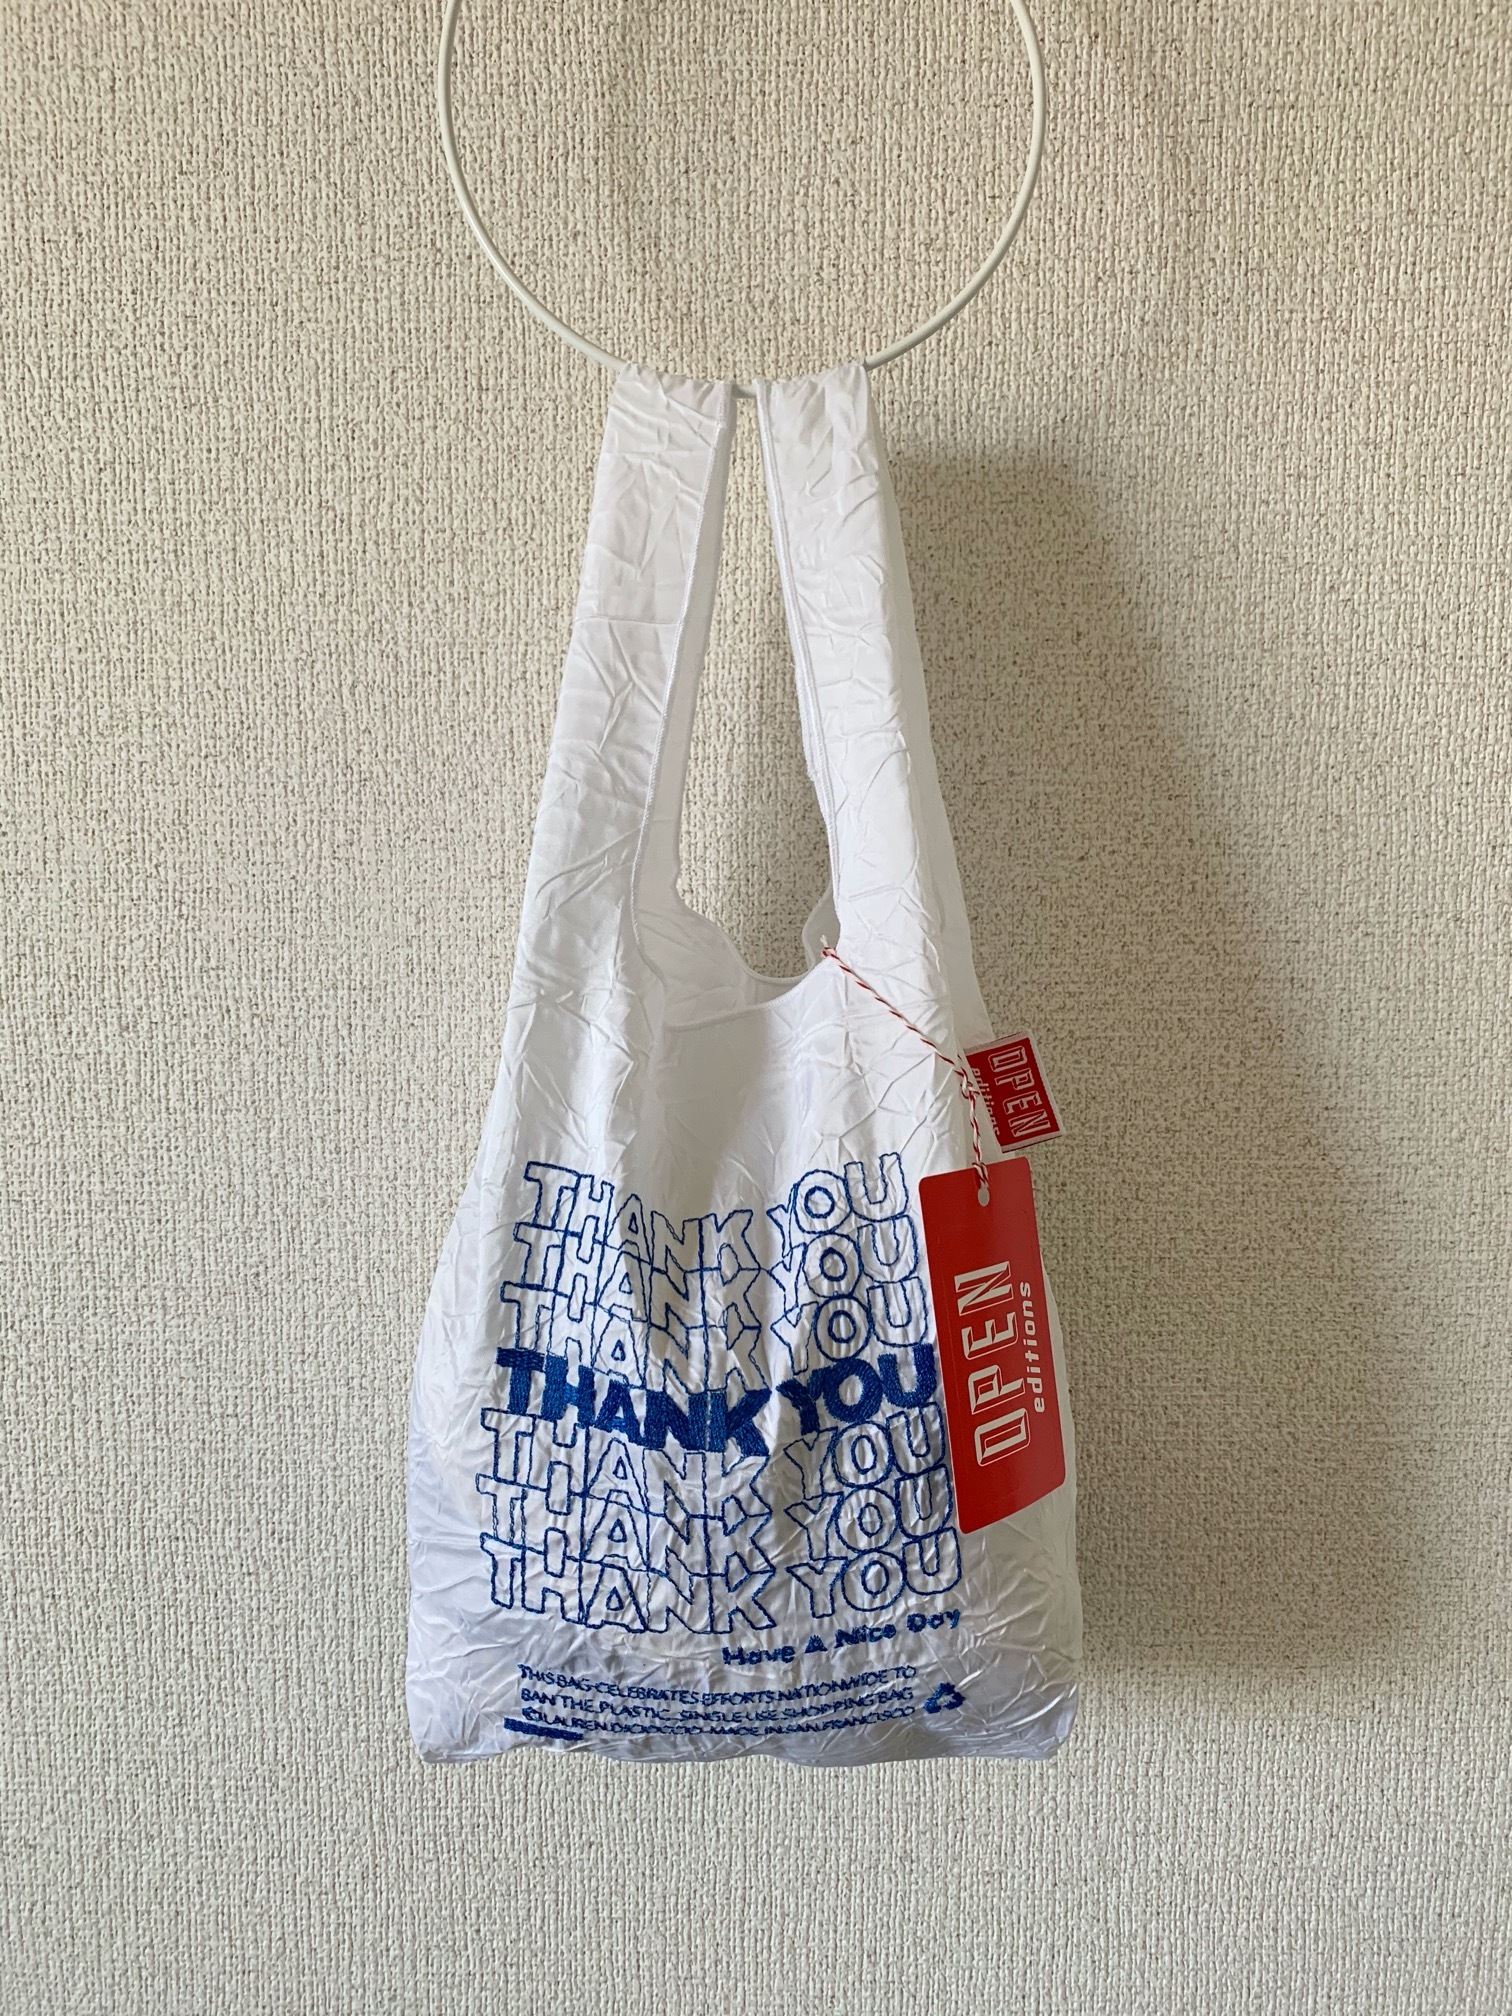 【OPEN EDITIONS / 送料無料】THANK YOU MINI エコバッグ/ THANK YOU Blue